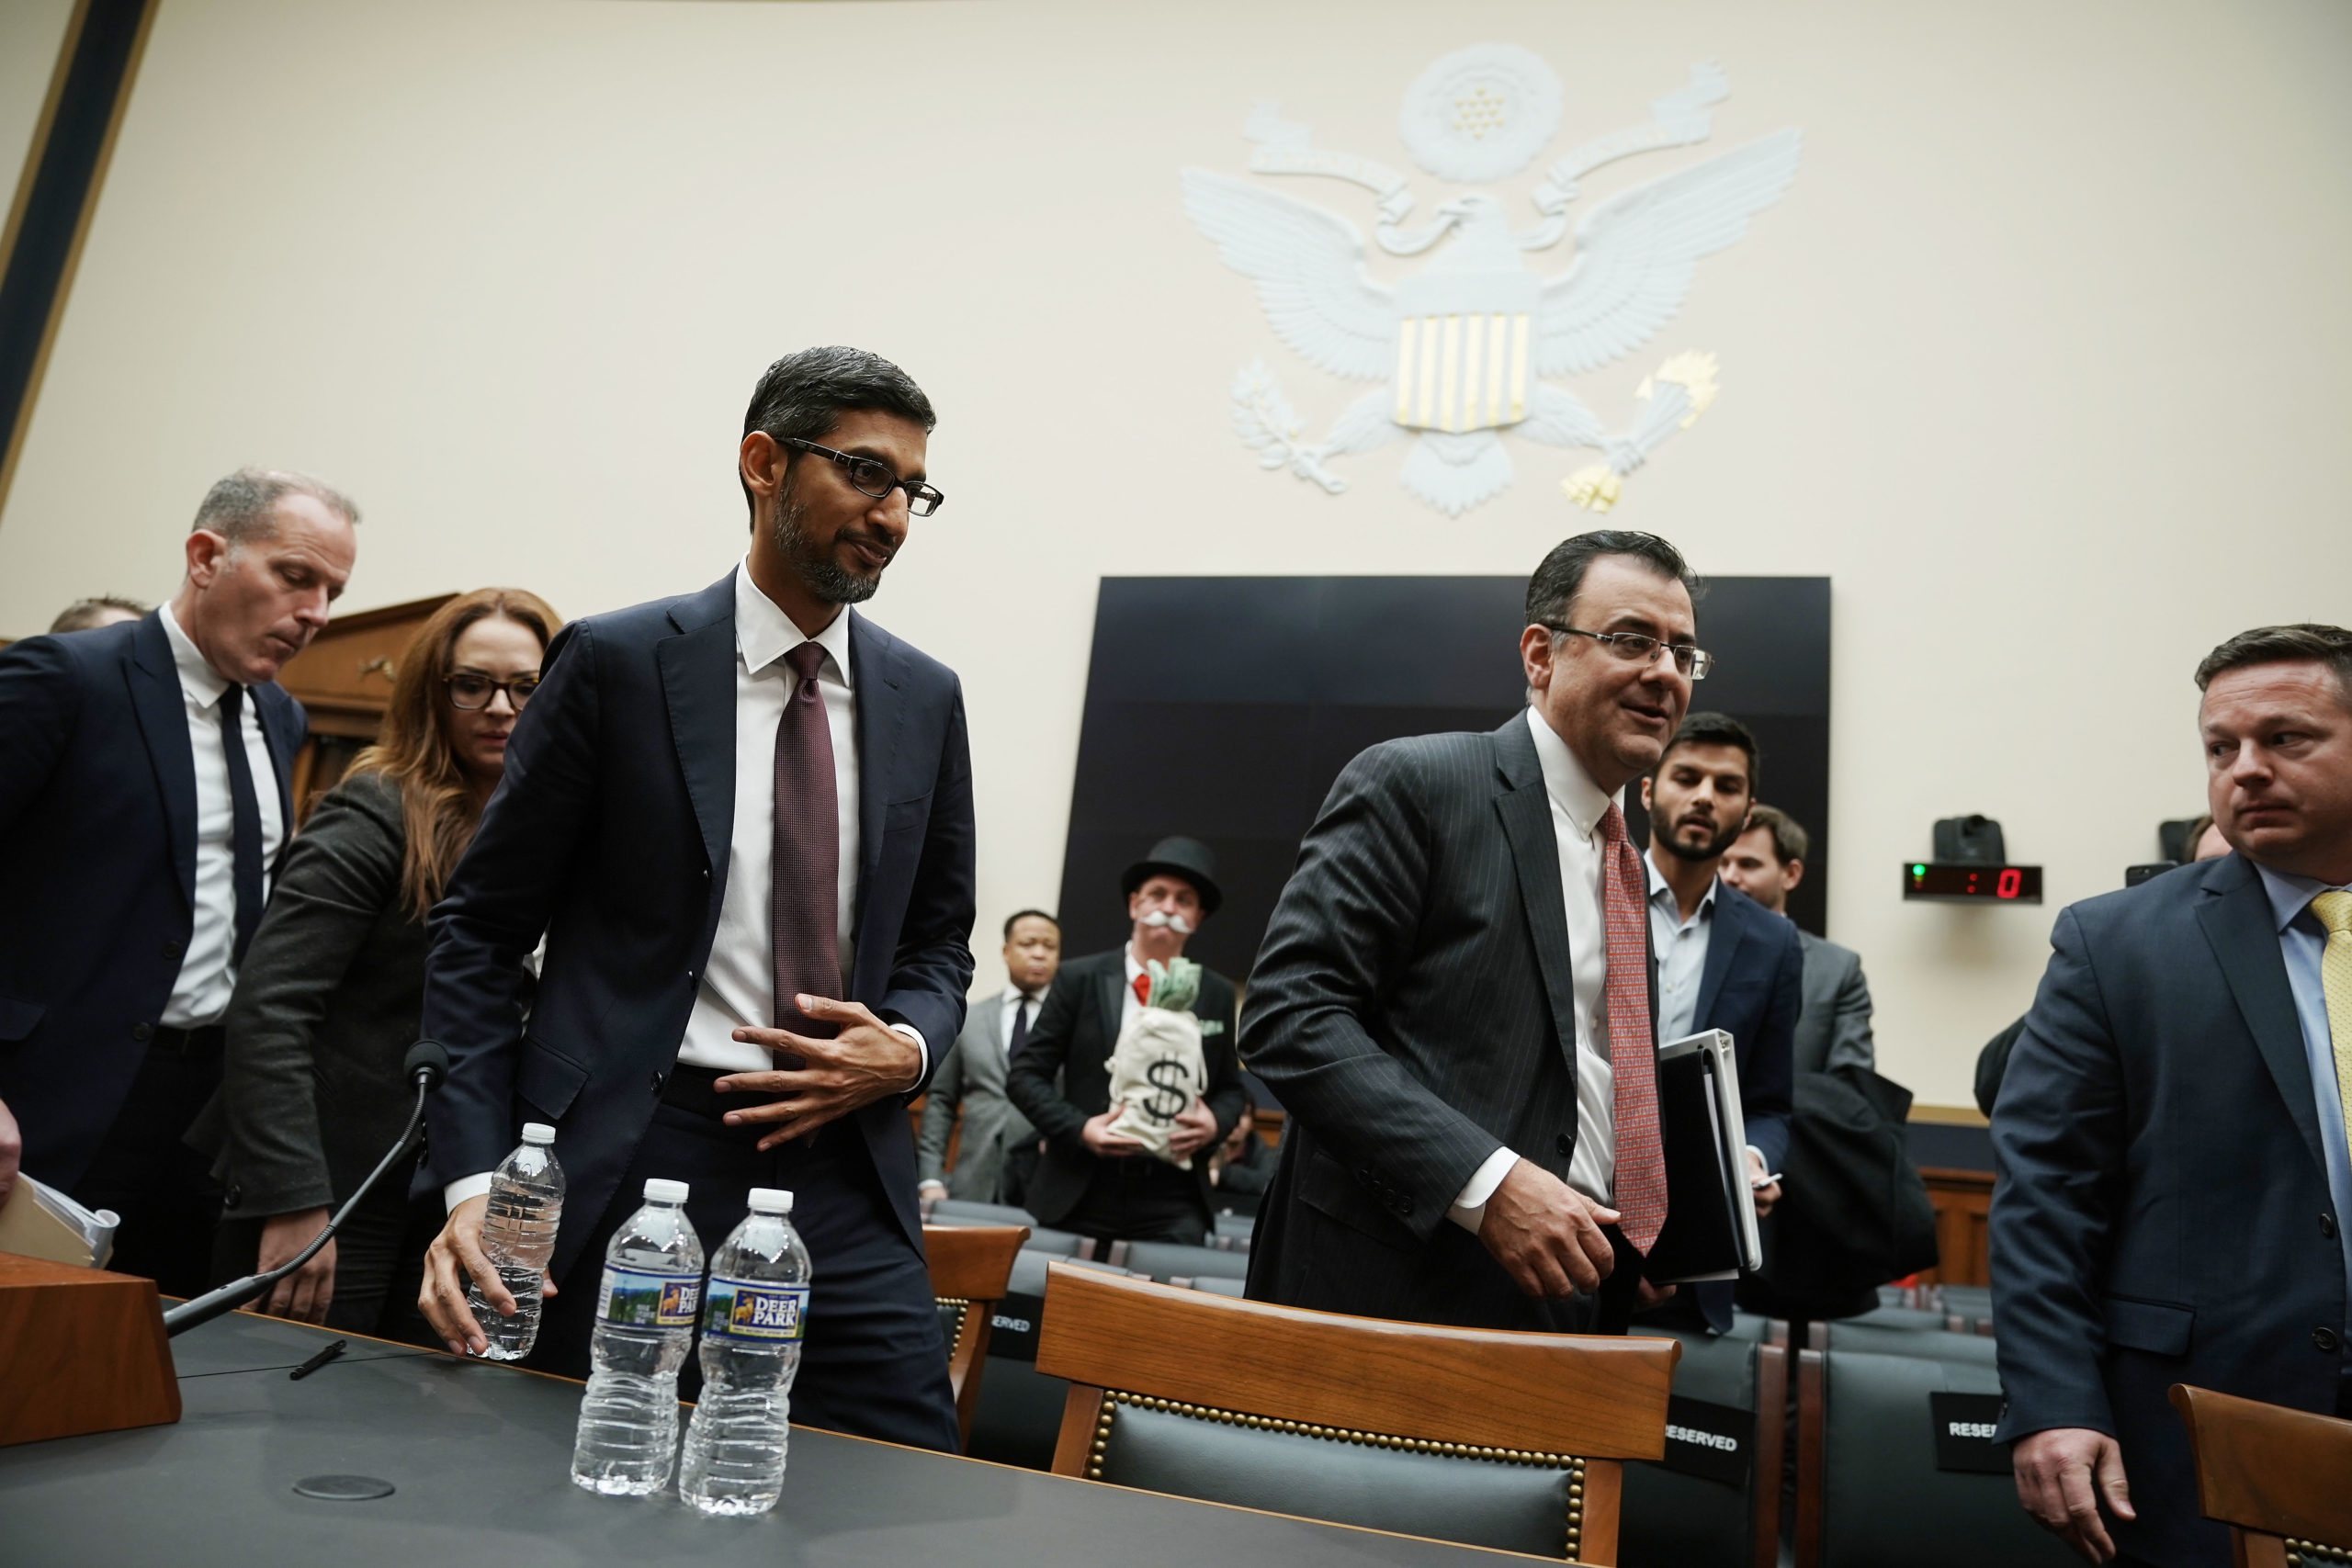 Google CEO Sundar Pichai departs a House Judiciary Committee hearing on Dec. 11, 2018. (Alex Wong/Getty Images)